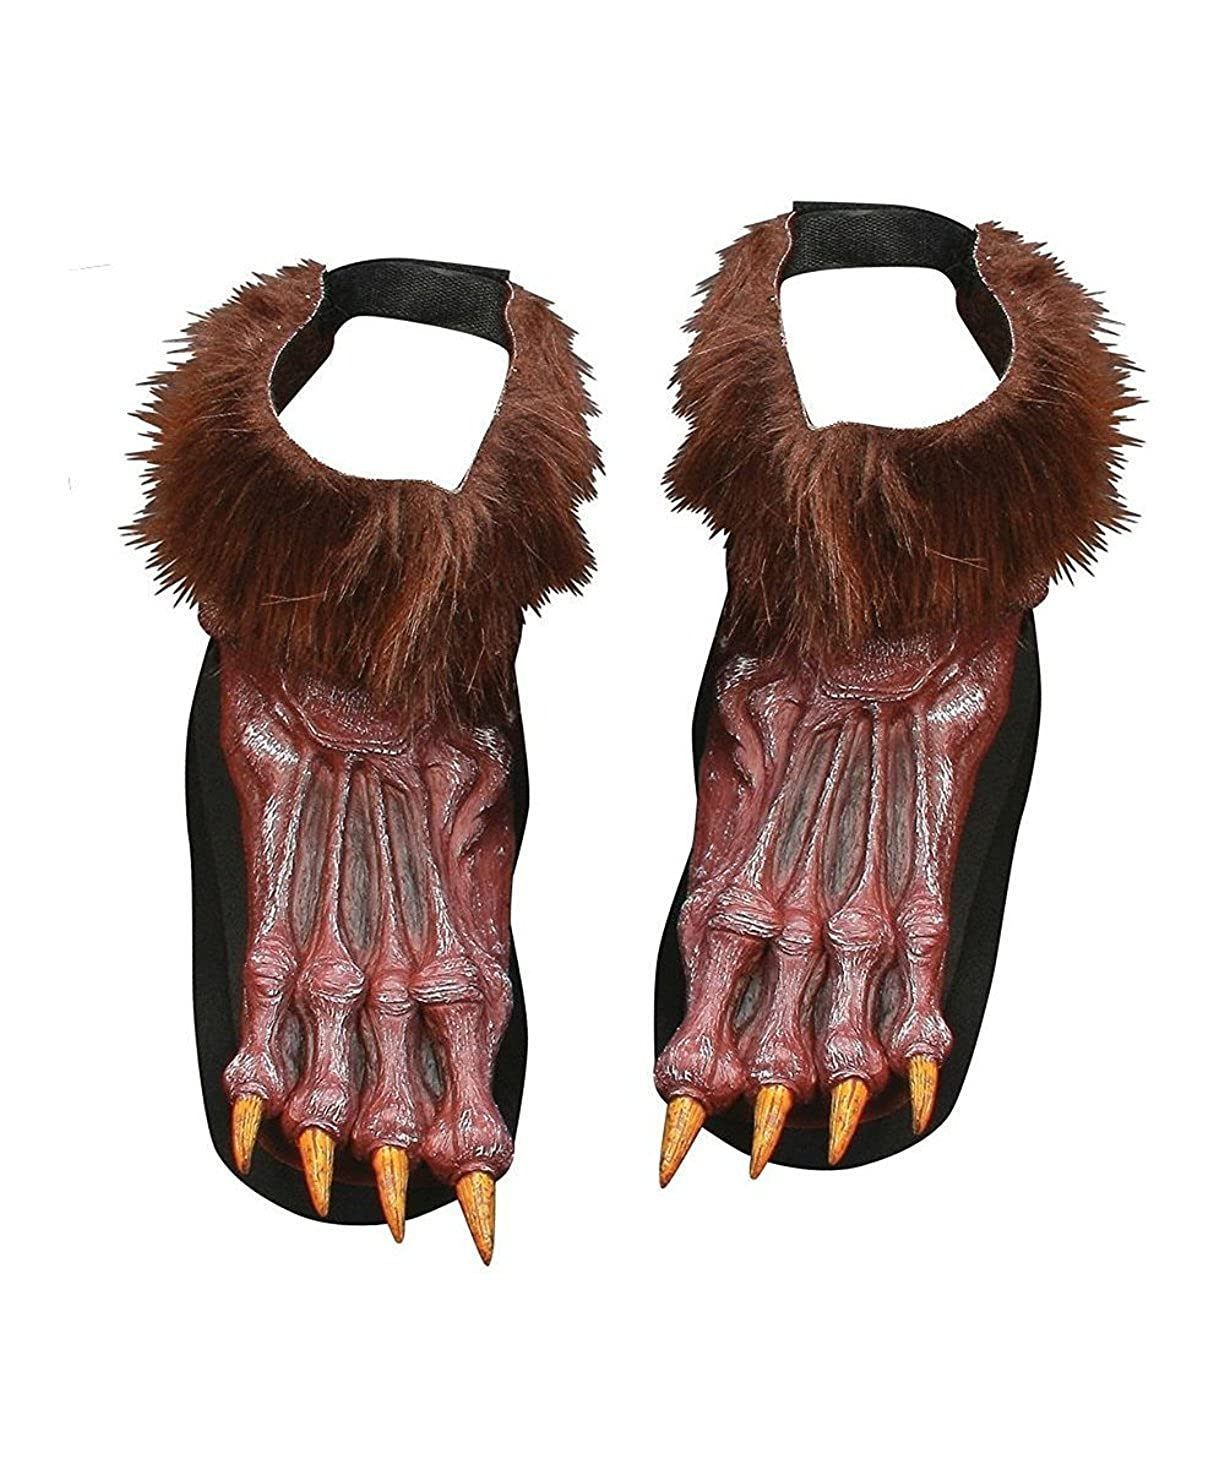 Werewolf Shoe Covers Wolf Halloween Adult Costume Accessory Brown Gray Black Fun World